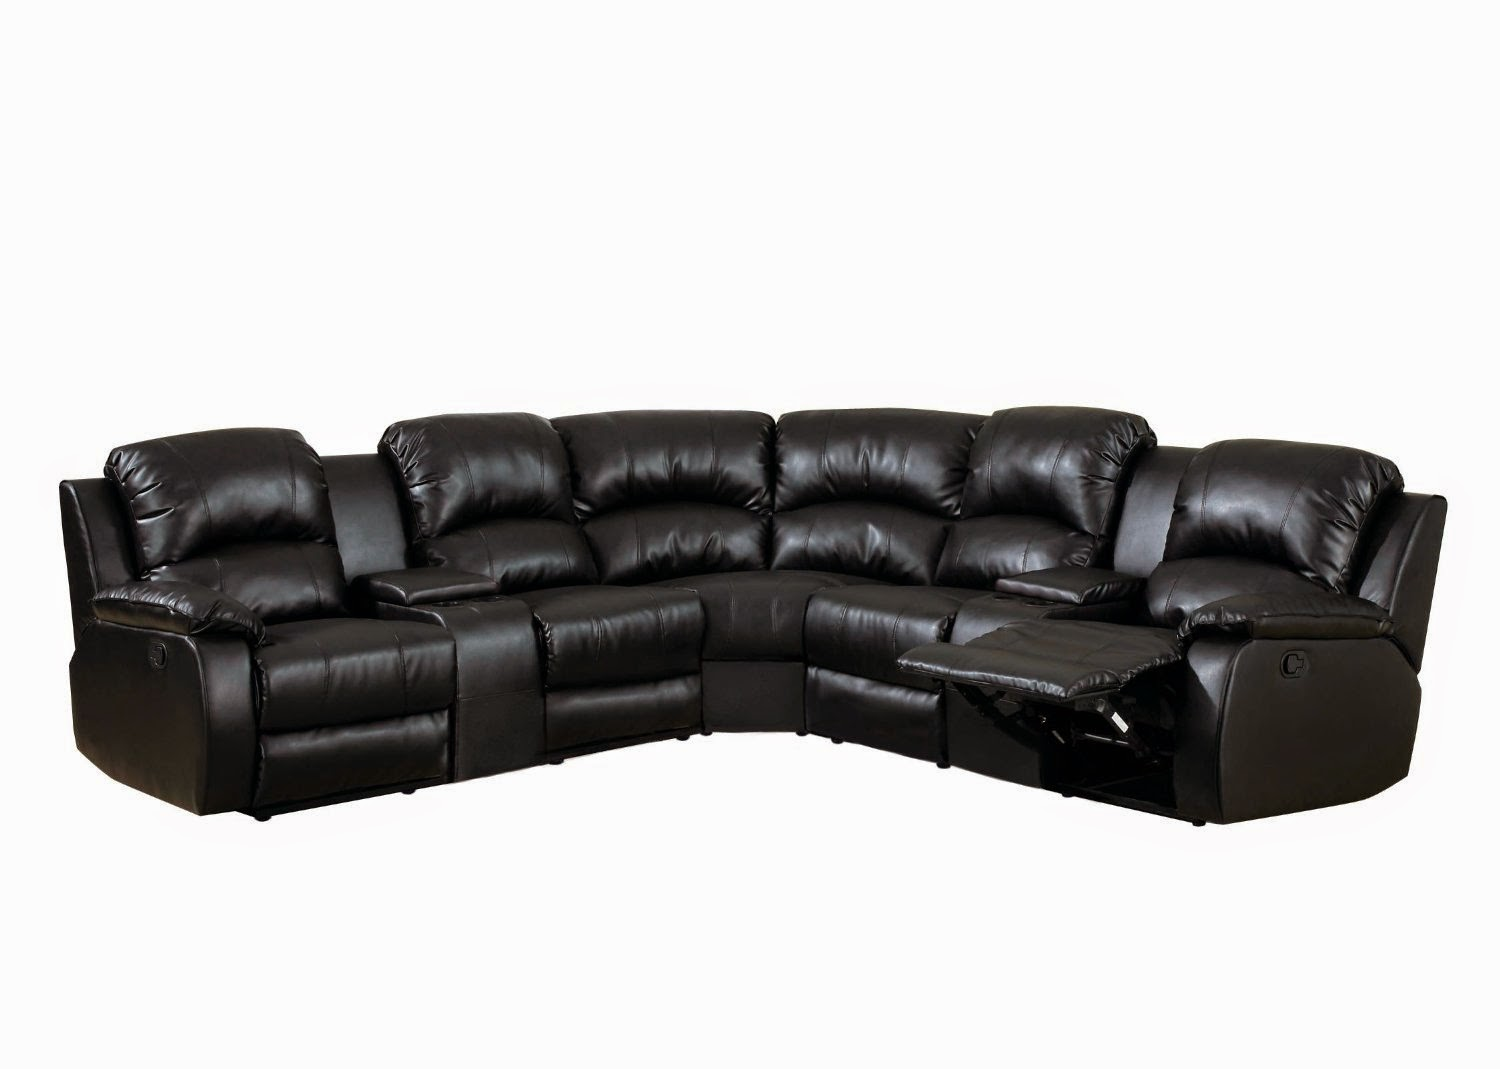 cheap leather sectional sofa bjs reclining black friday best recliner brand recommendation wanted